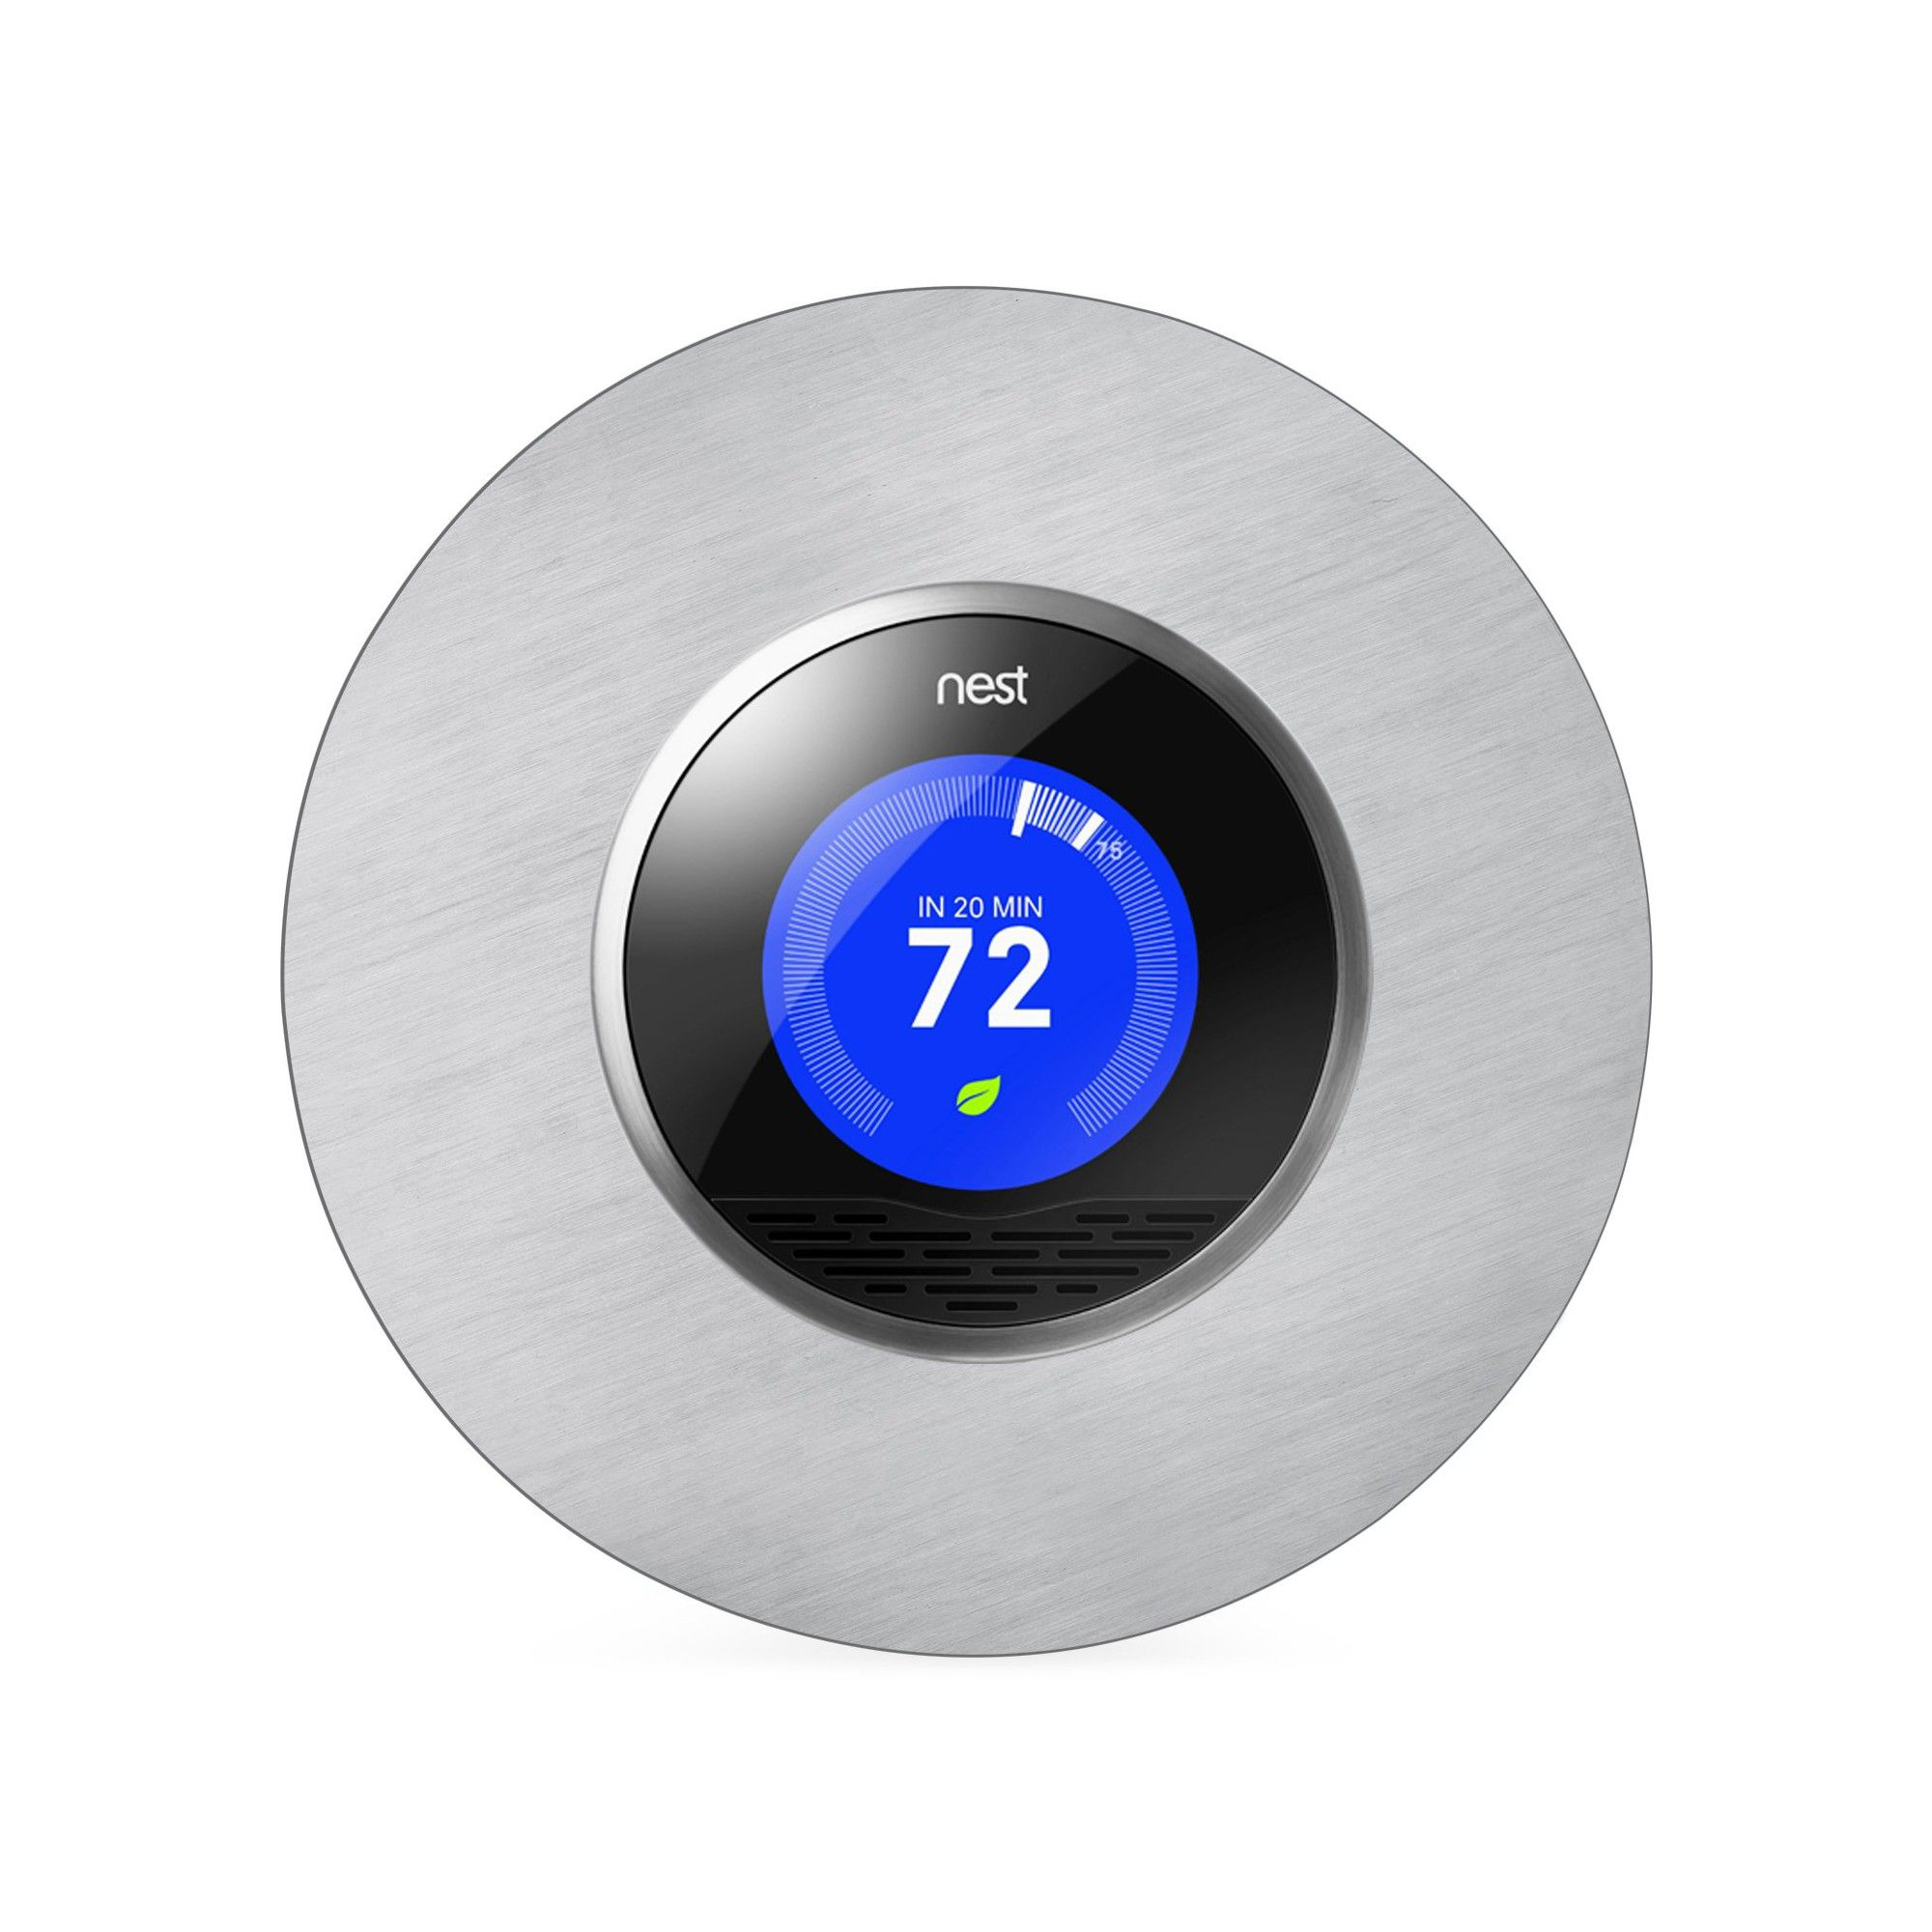 Beautiful Round 6 Wall Plate Cover For All 2nd And 3rd Generation Nest Thermostat By Wasserstein Stainless Steel In 2020 Wall Plate Cover Nest Thermostat Thermostat Cover